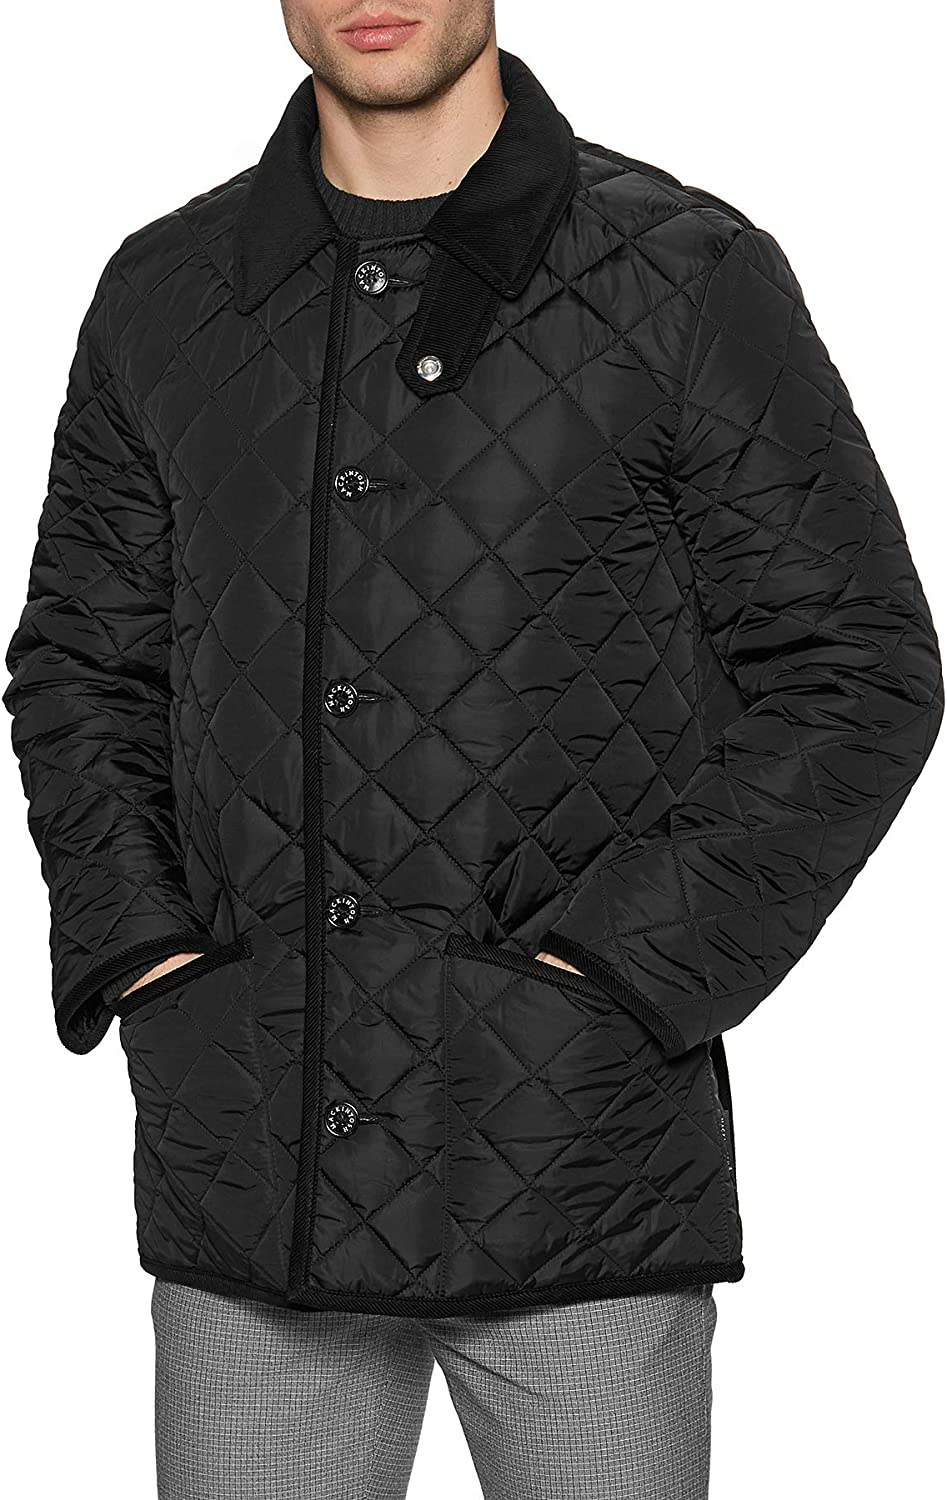 Mackintosh Waverly Gq-1001 Quilted Jacket 40 inch Black